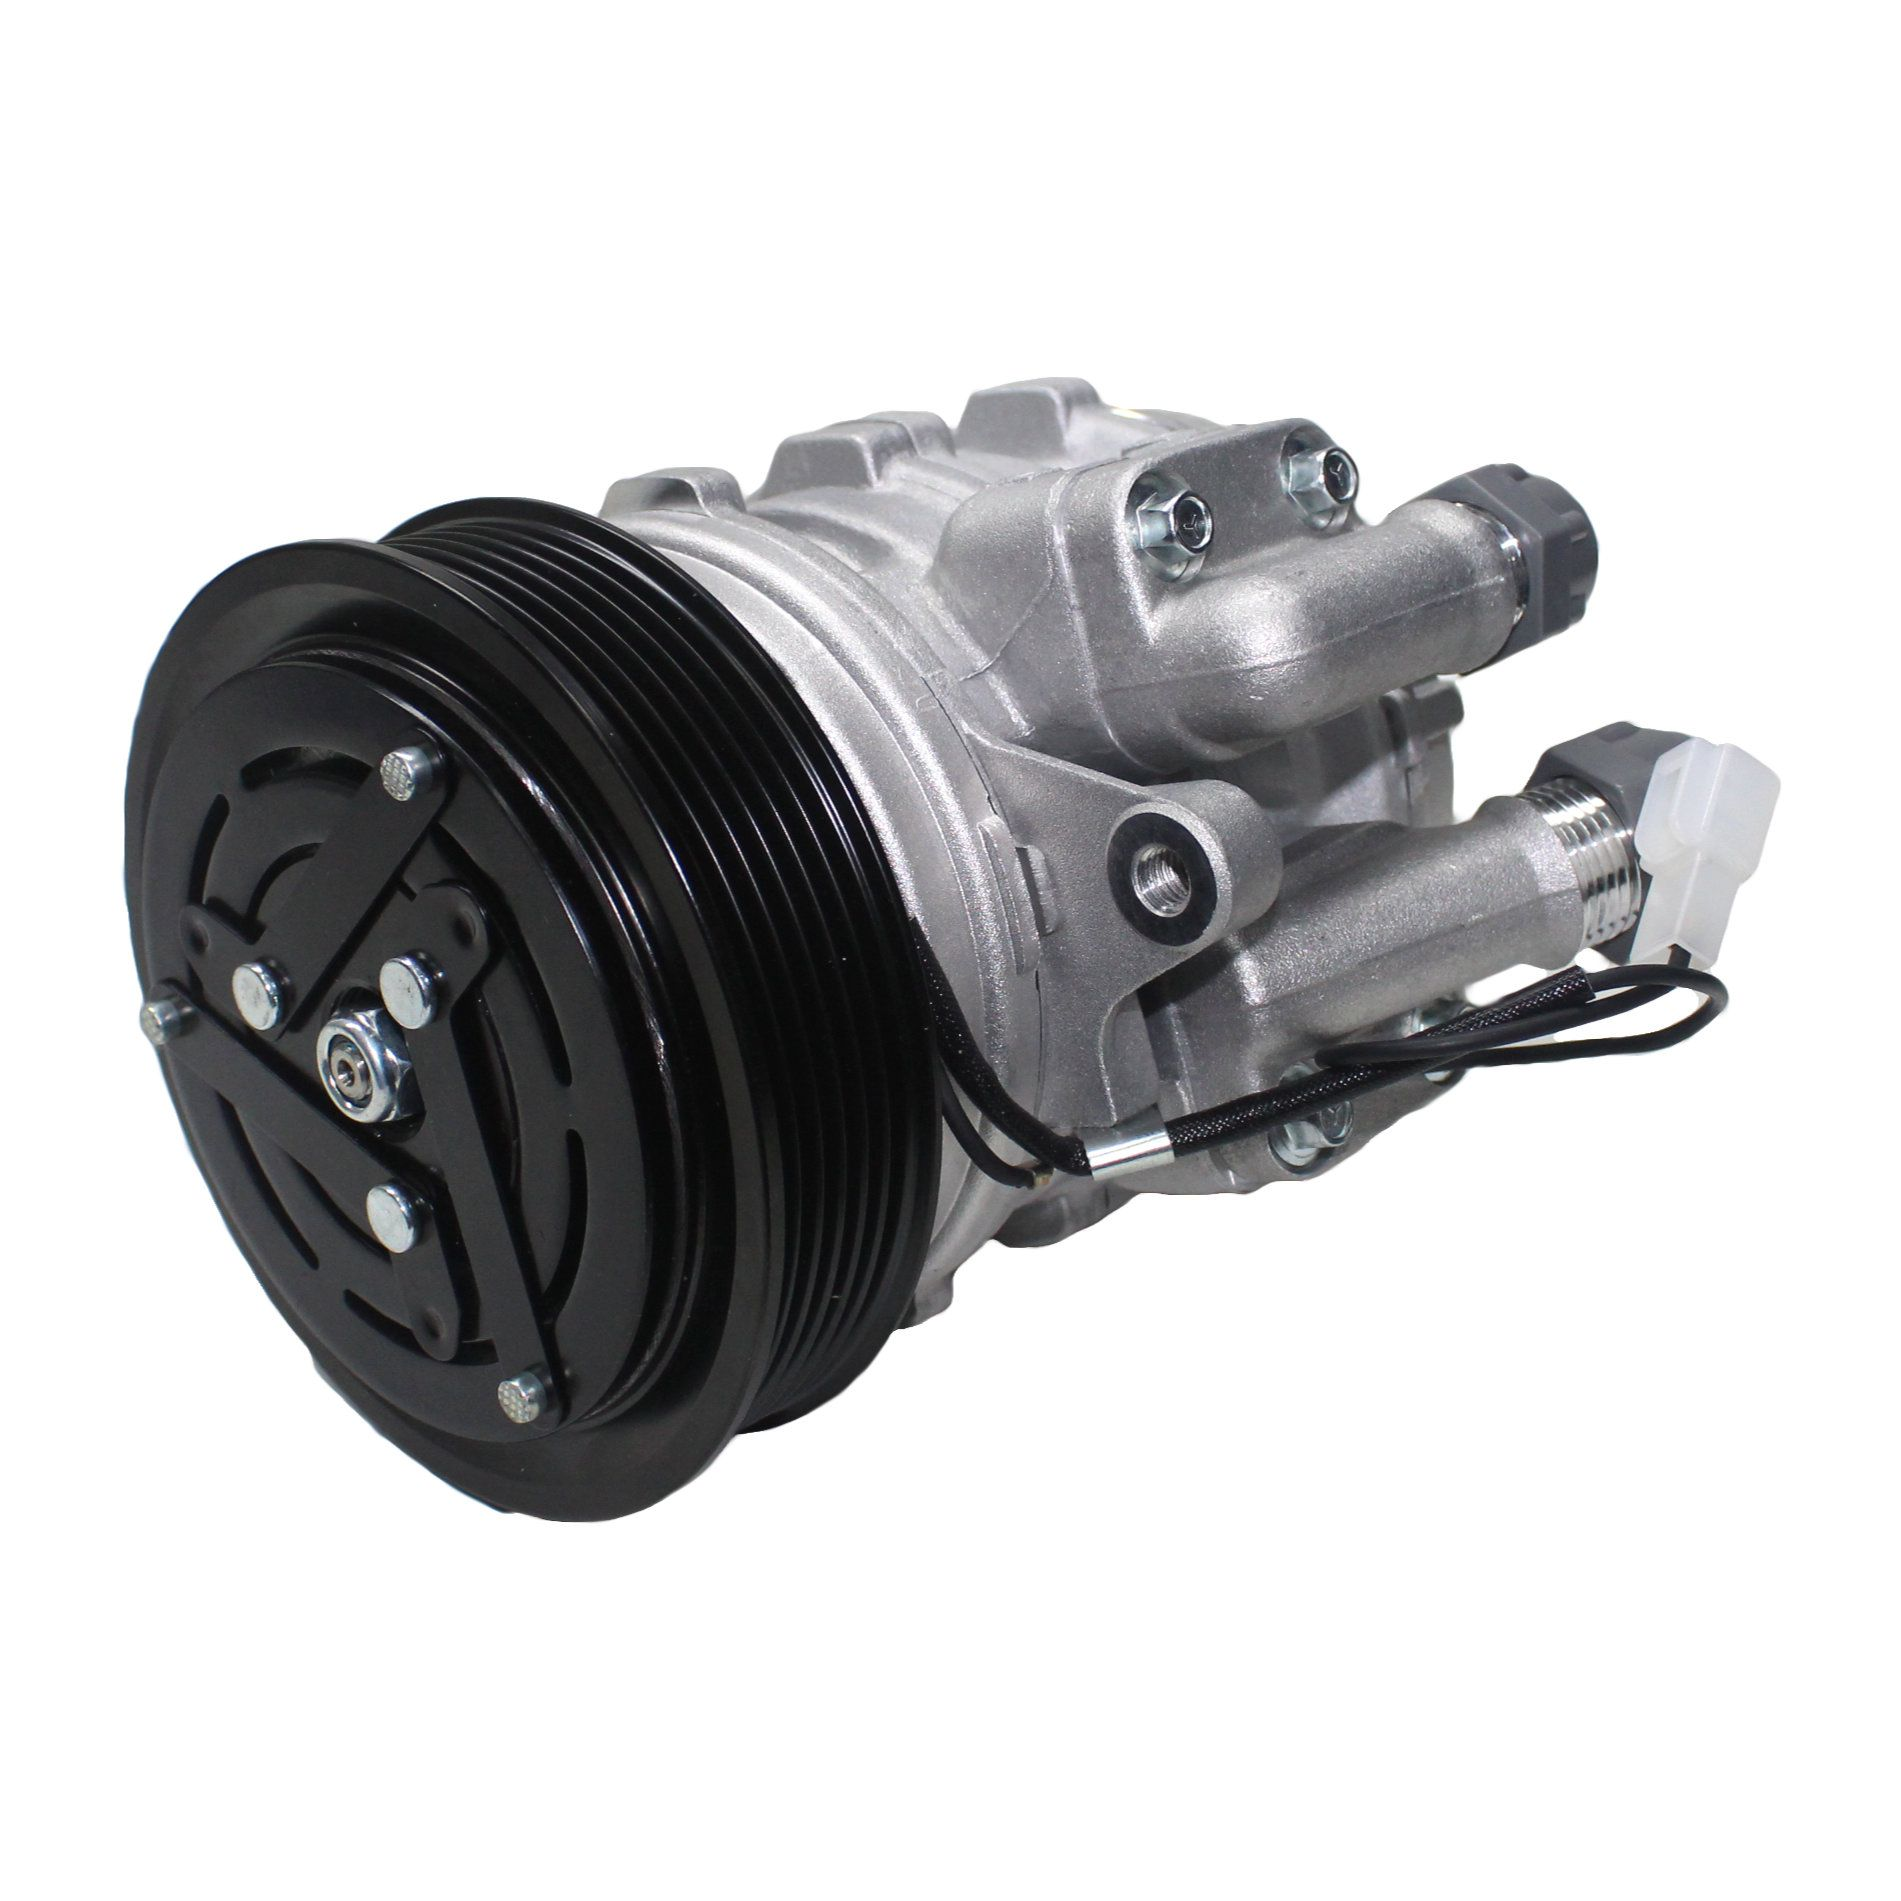 Compressor Ar Condicionado Gol AT, Saveiro AT, Parati 10P08